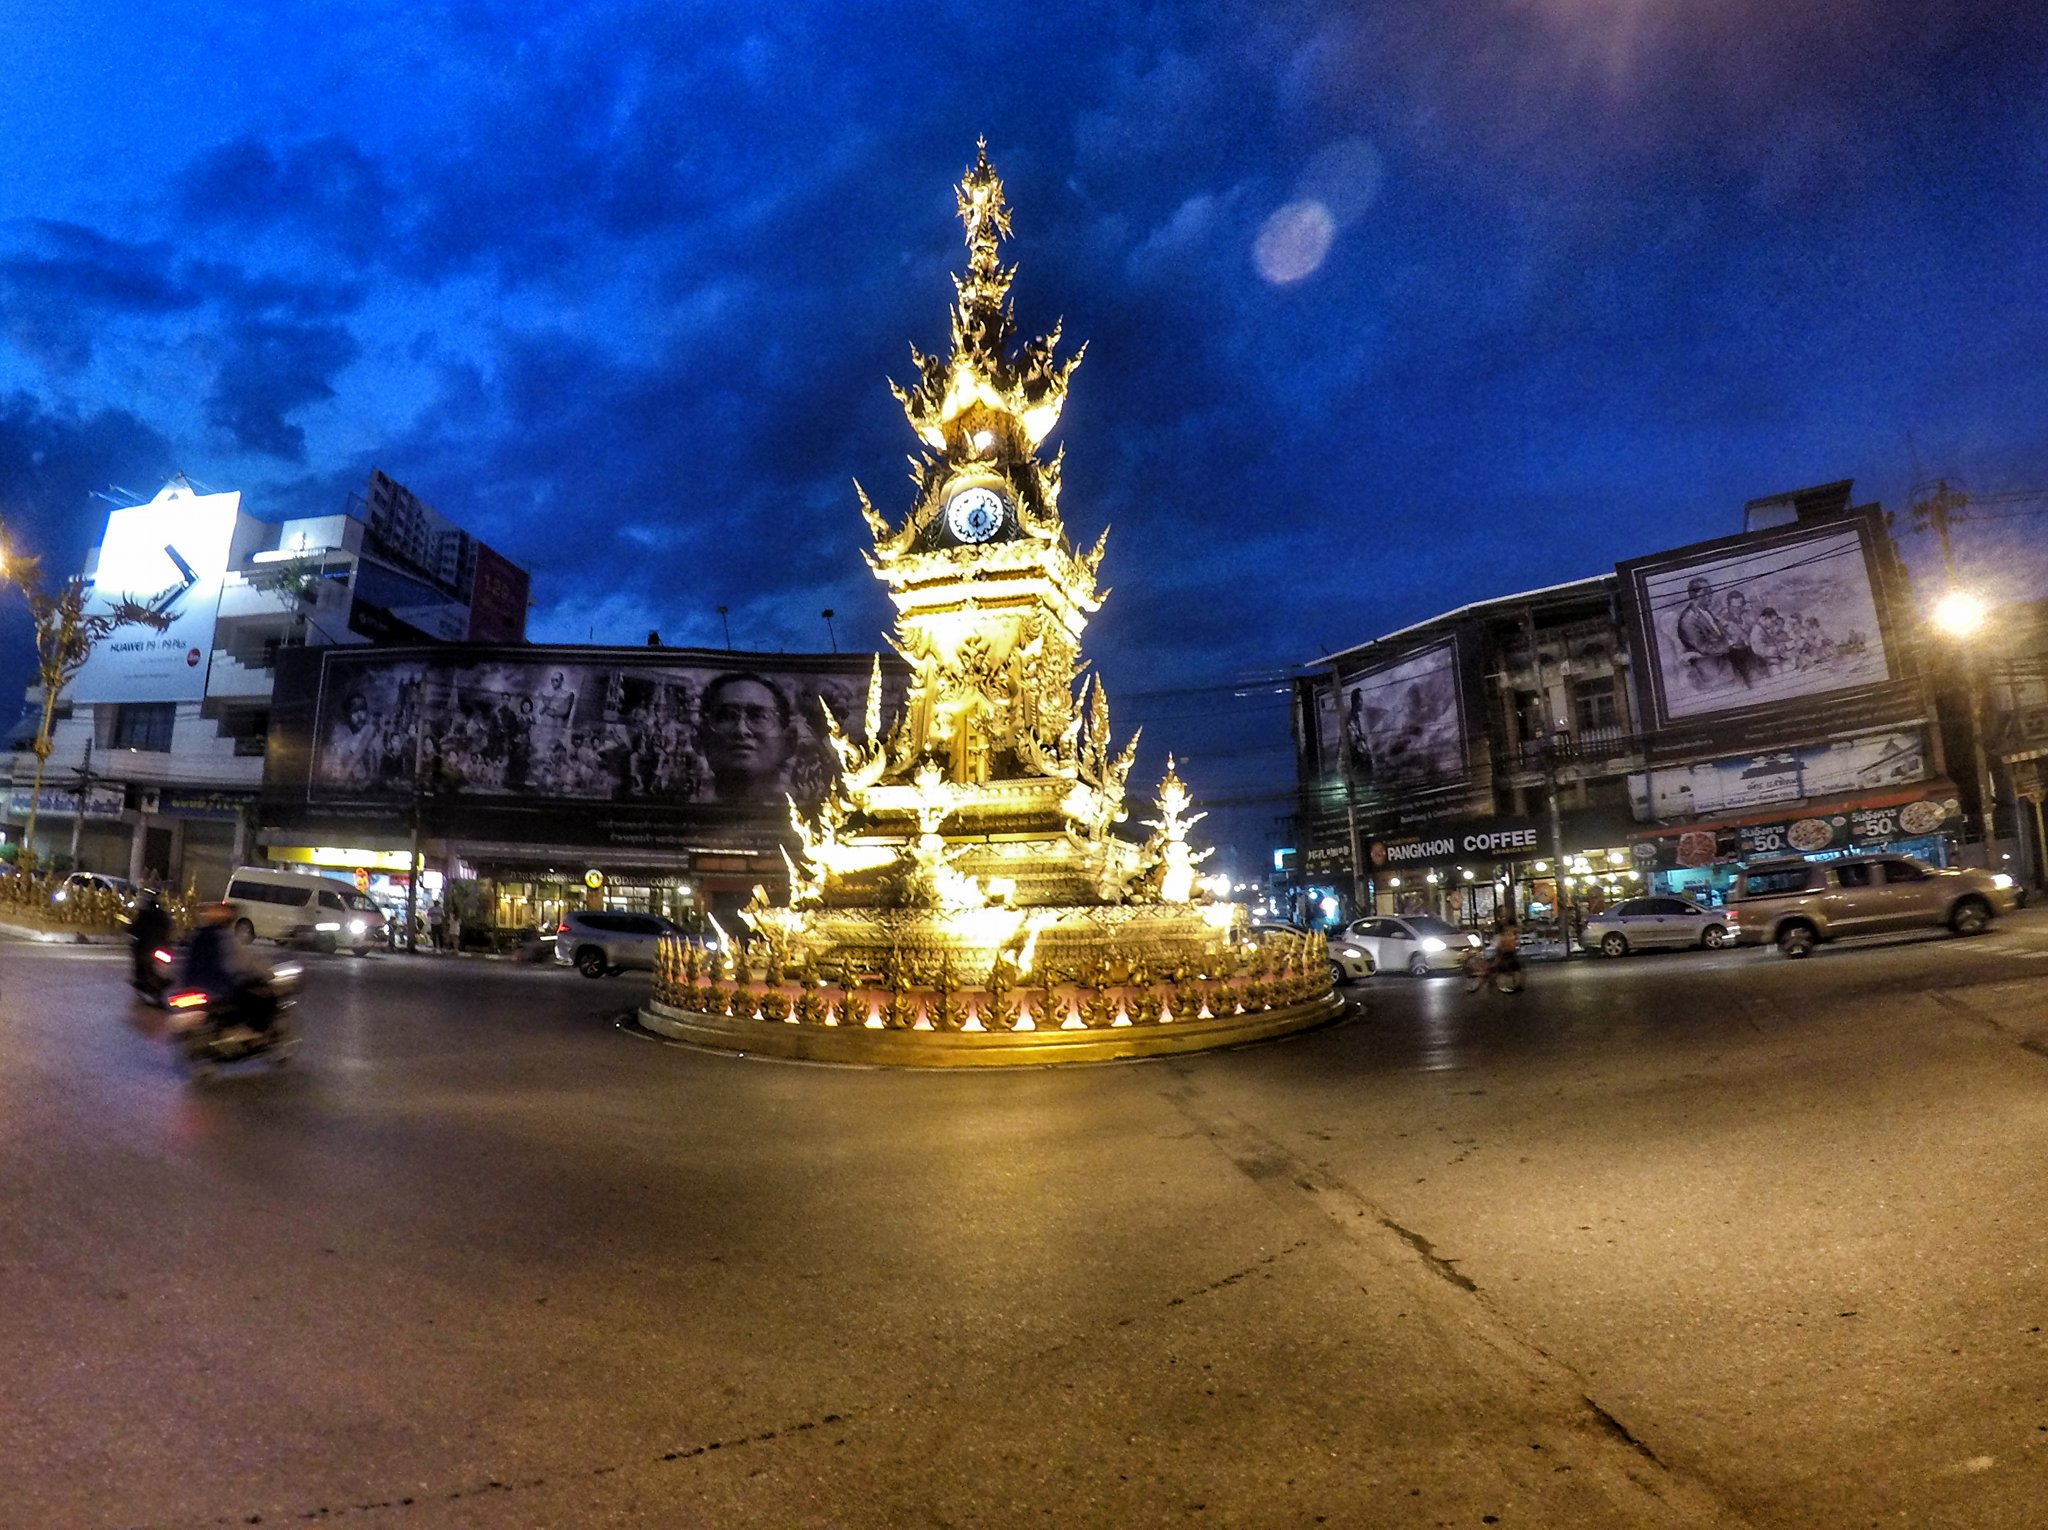 Chiang Rai Travel Guide and Itinerary - Clock Towr in Chiang Rai, Thailand